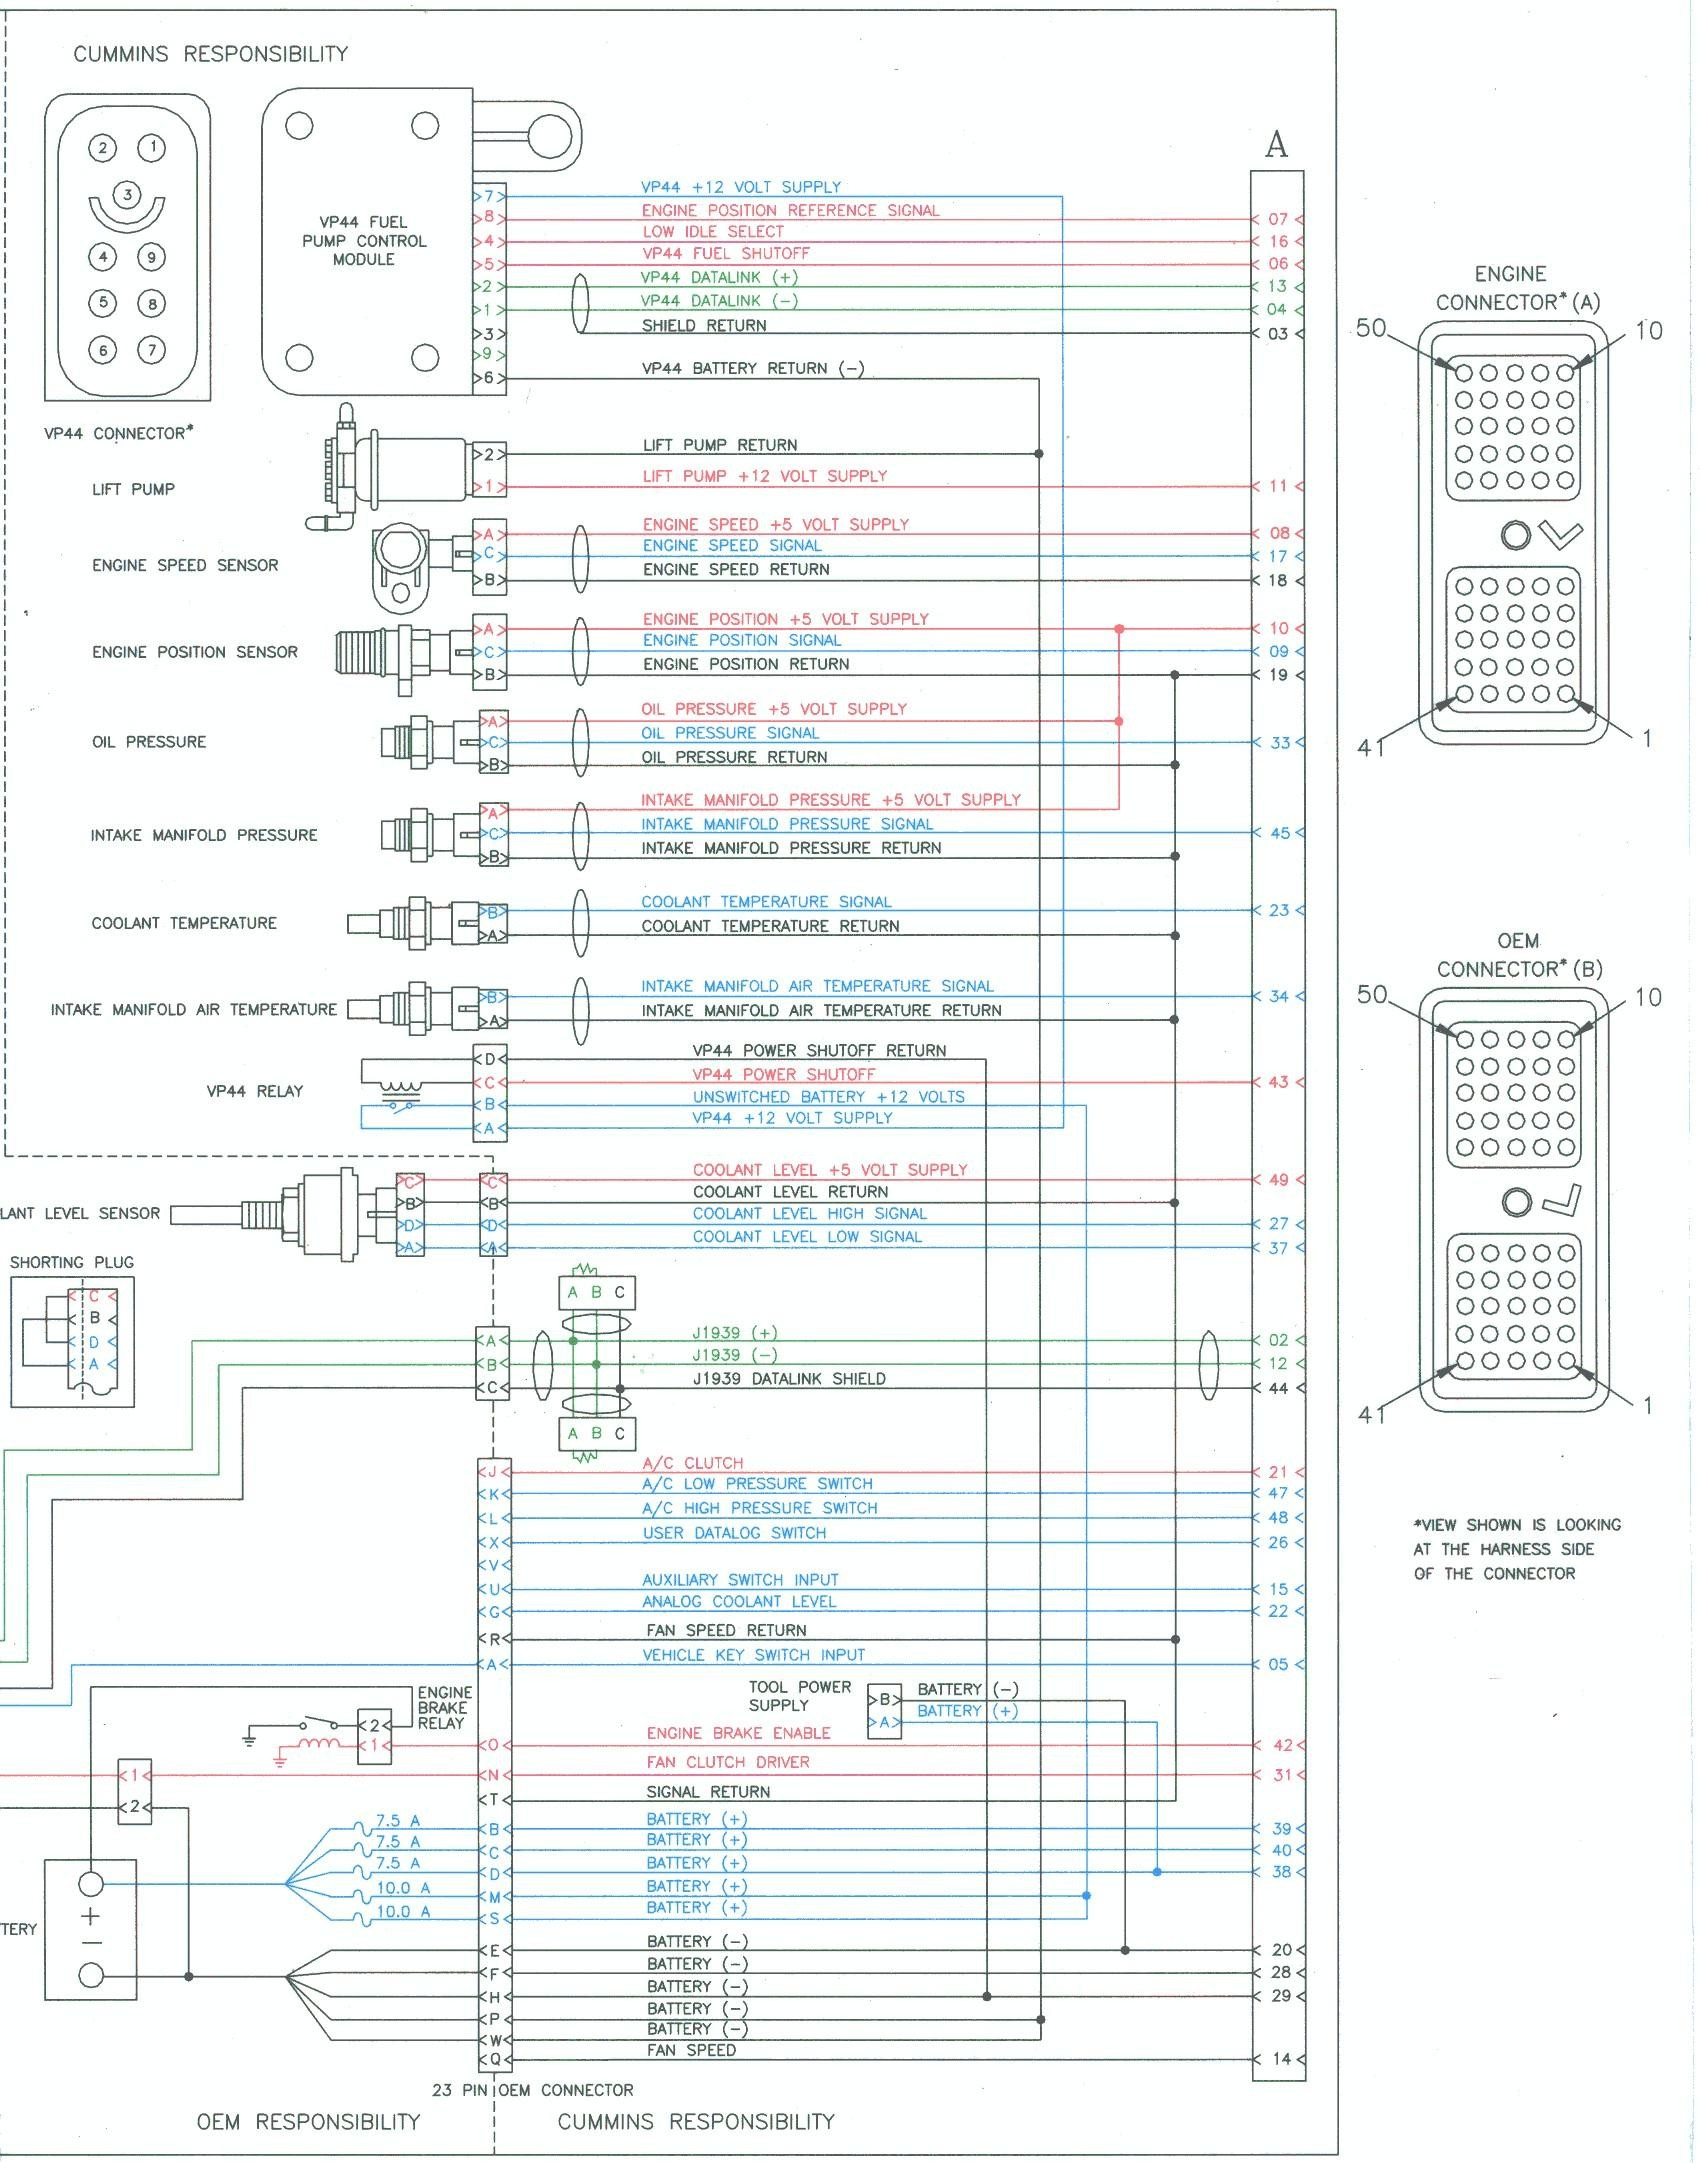 WRG-9159] N14 Ecm Wiring Diagram Free Picture Schematic on